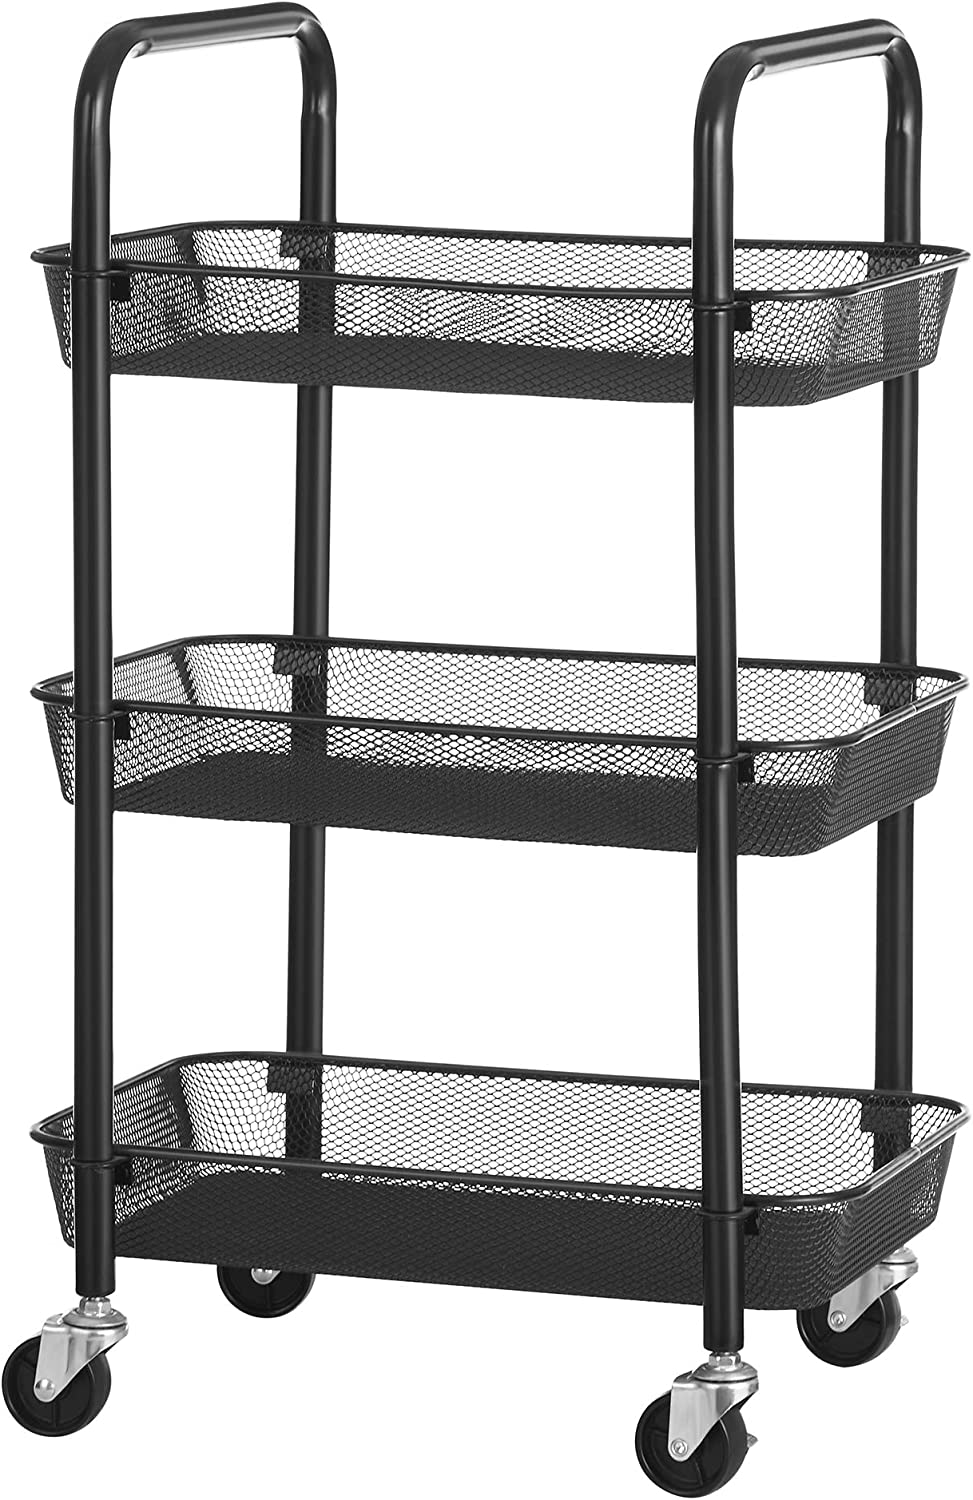 SONGMICS Rolling Cart, 3-Tier Metal Storage Cart, Kitchen Storage Trolley with 2 Brakes, Utility Cart with Handles, Easy Assembly, for Bathroom, Kitchen, Office, Black UBSC062B01